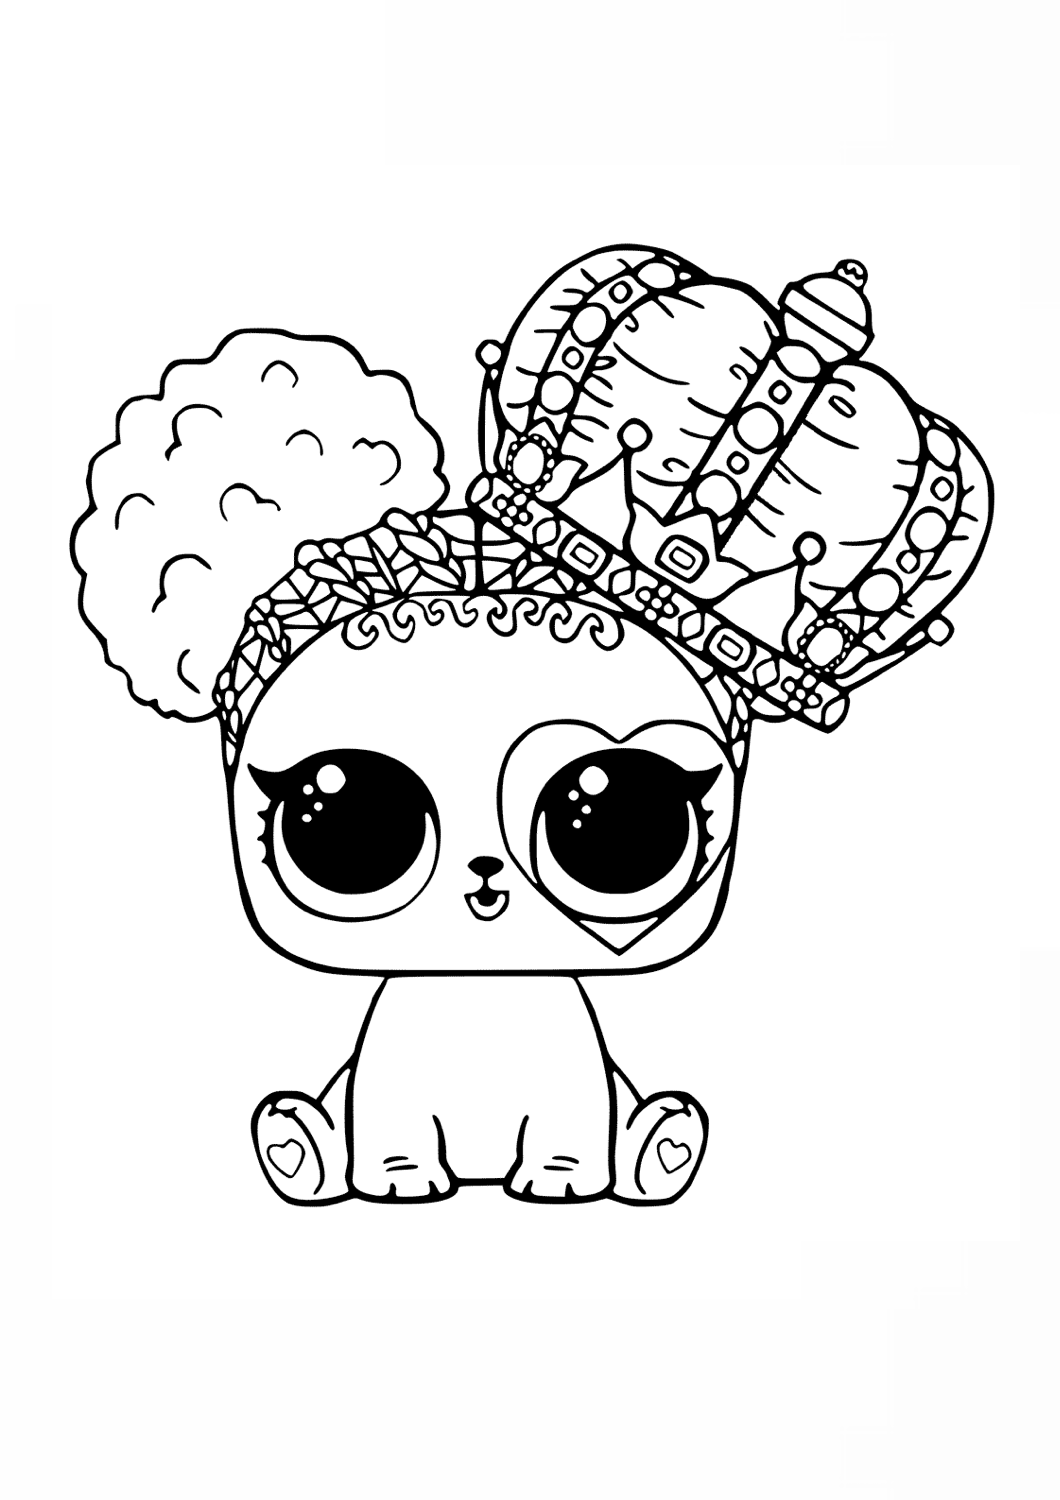 Heartbreaker In 2020 Puppy Coloring Pages Unicorn Coloring Pages Bunny Coloring Pages